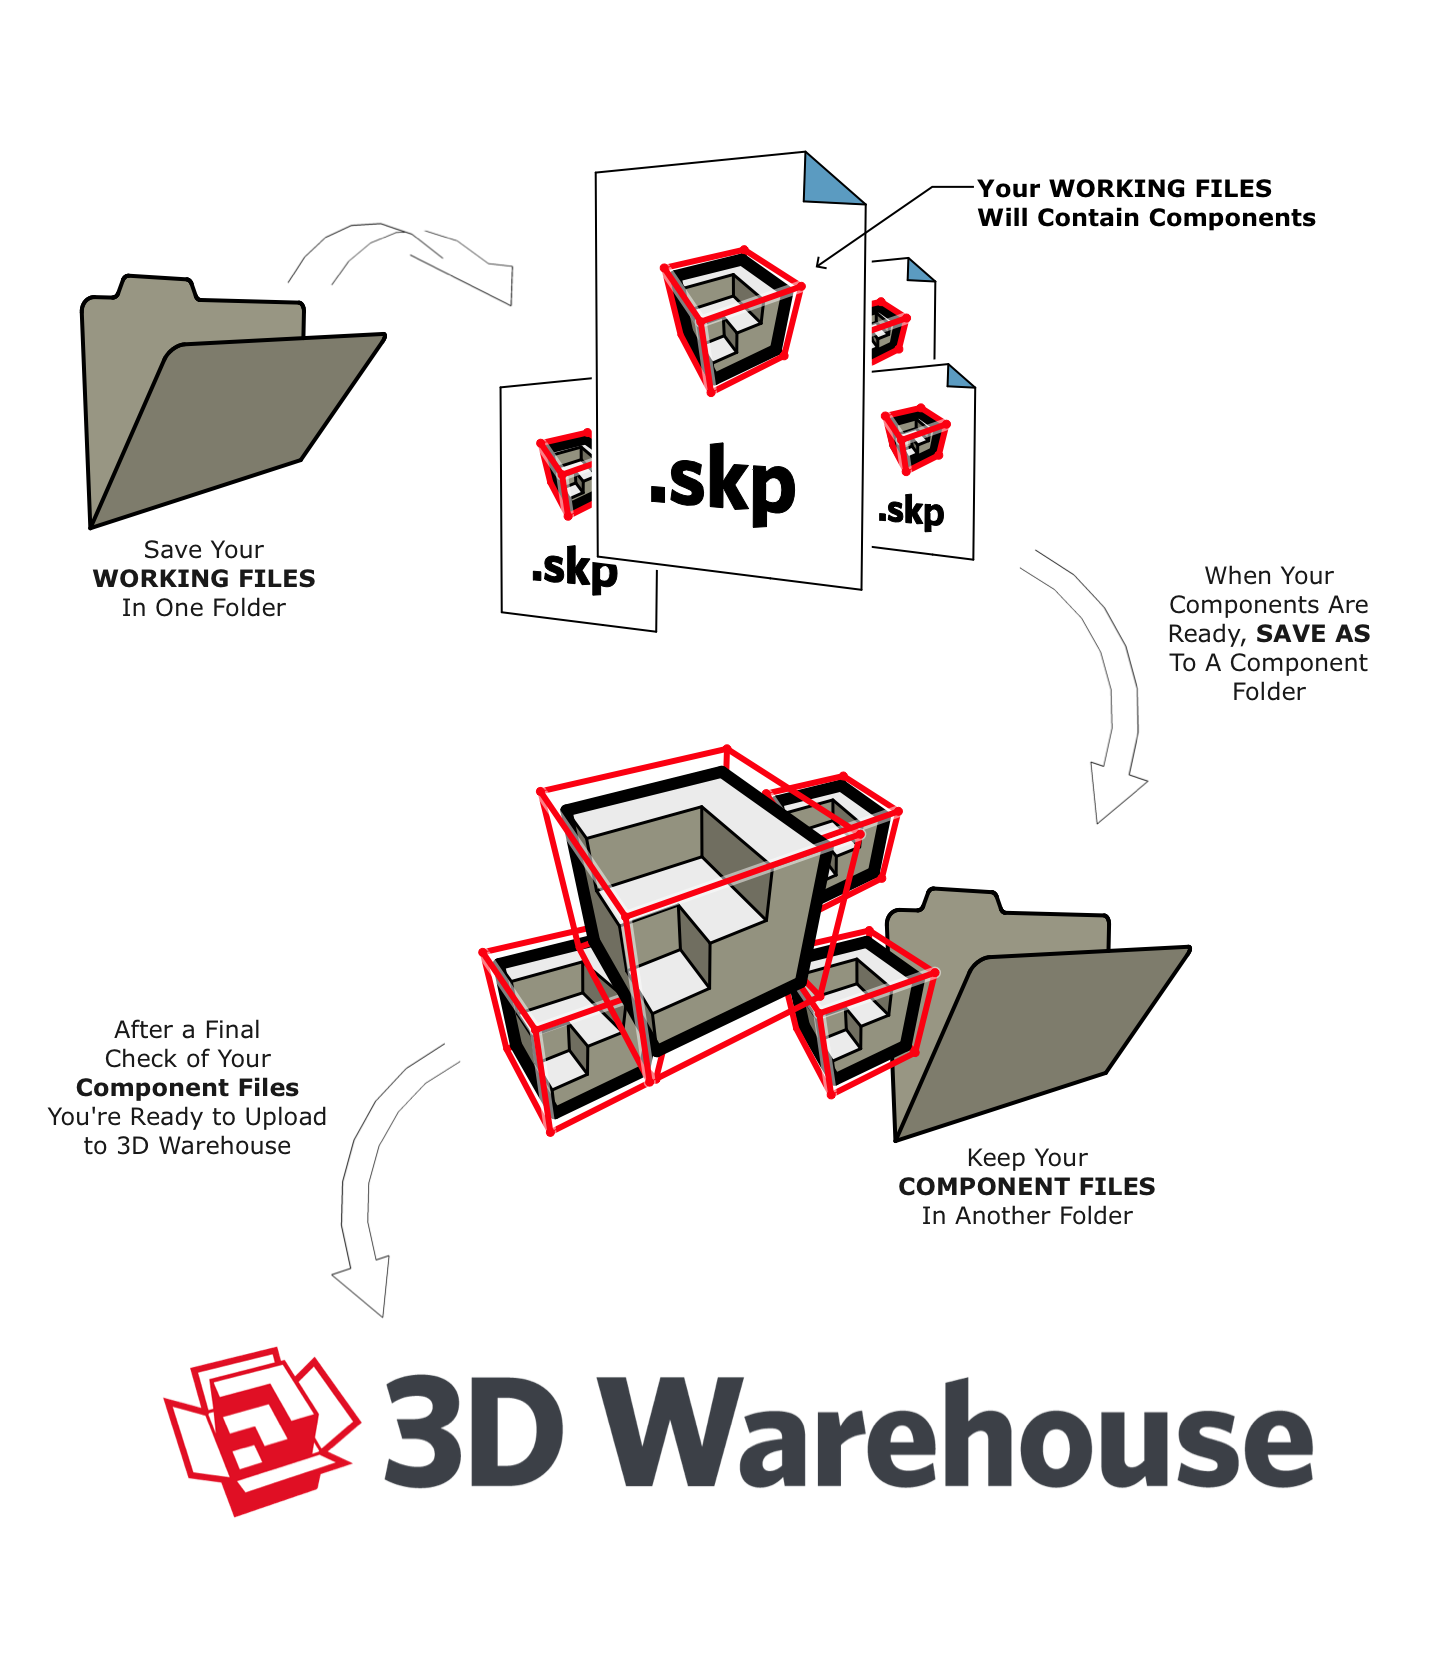 Making a great 3d warehouse model sketchup knowledge base first a few notes about process management pooptronica